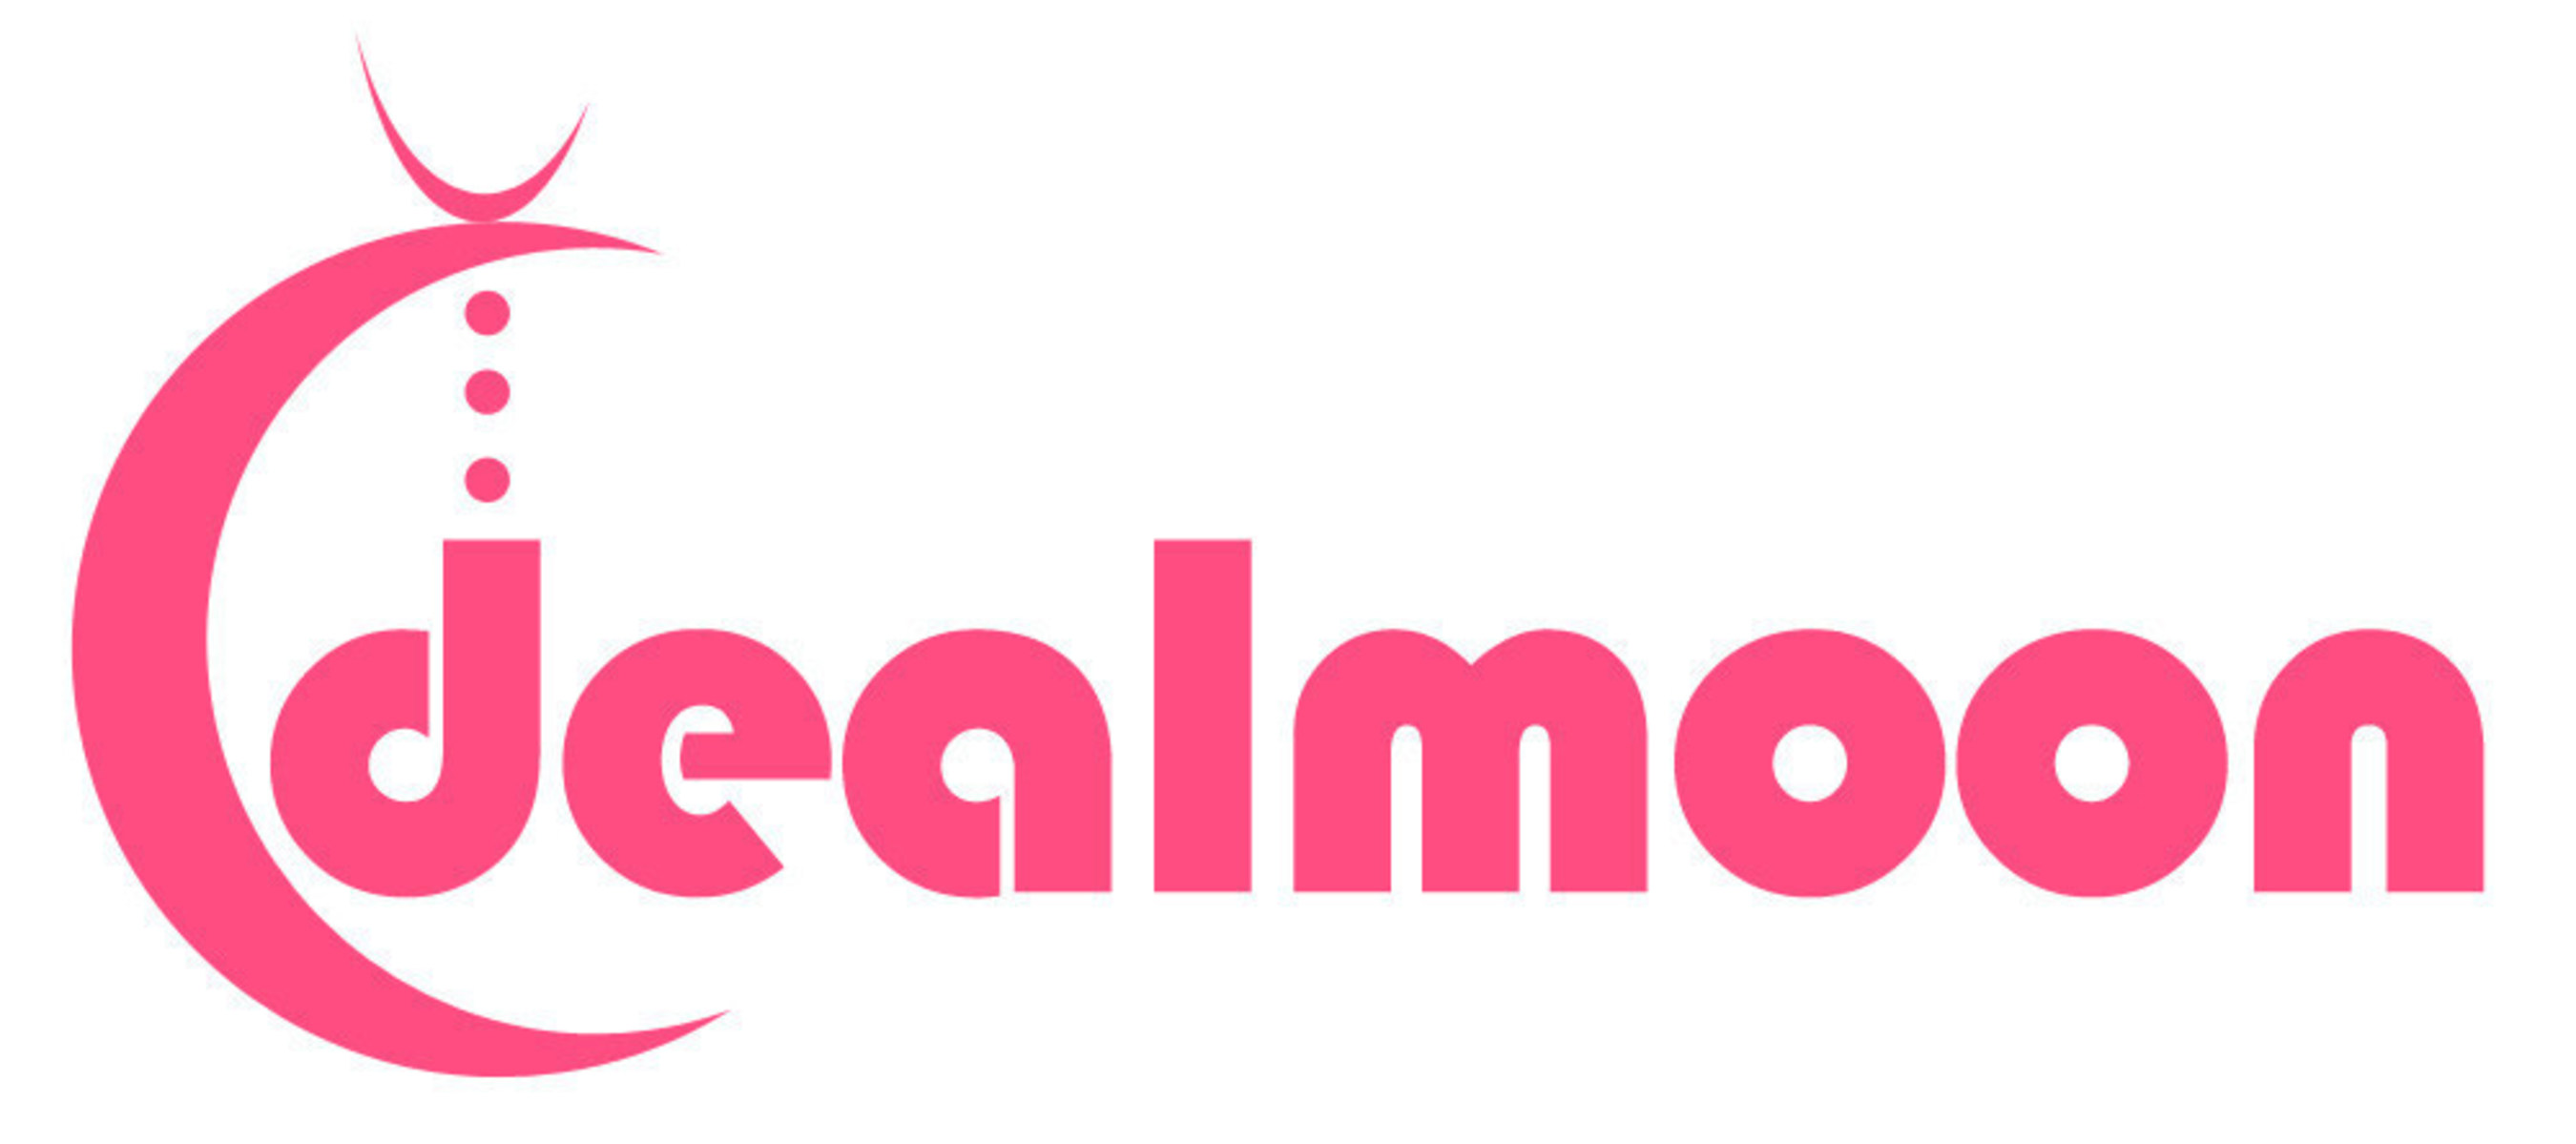 Retail Trends: Dealmoon.com Has 5M Chinese American Customers Online Who They Are Driving to Brick and Mortar